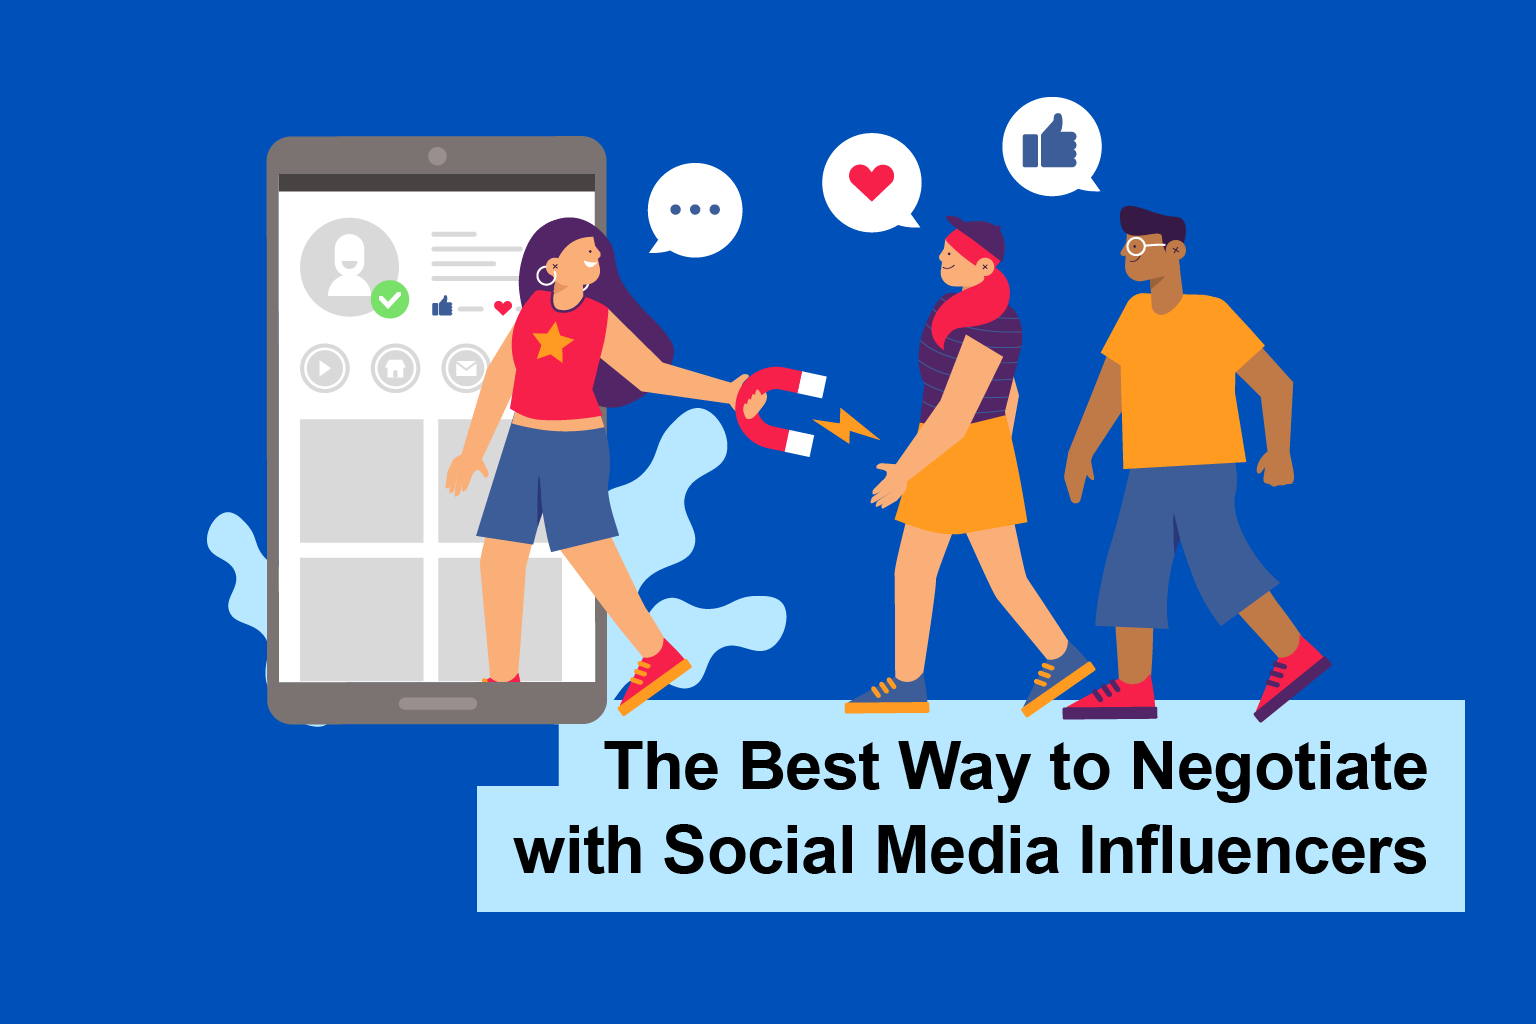 The Best Way to Negotiate with Social Media Influencers